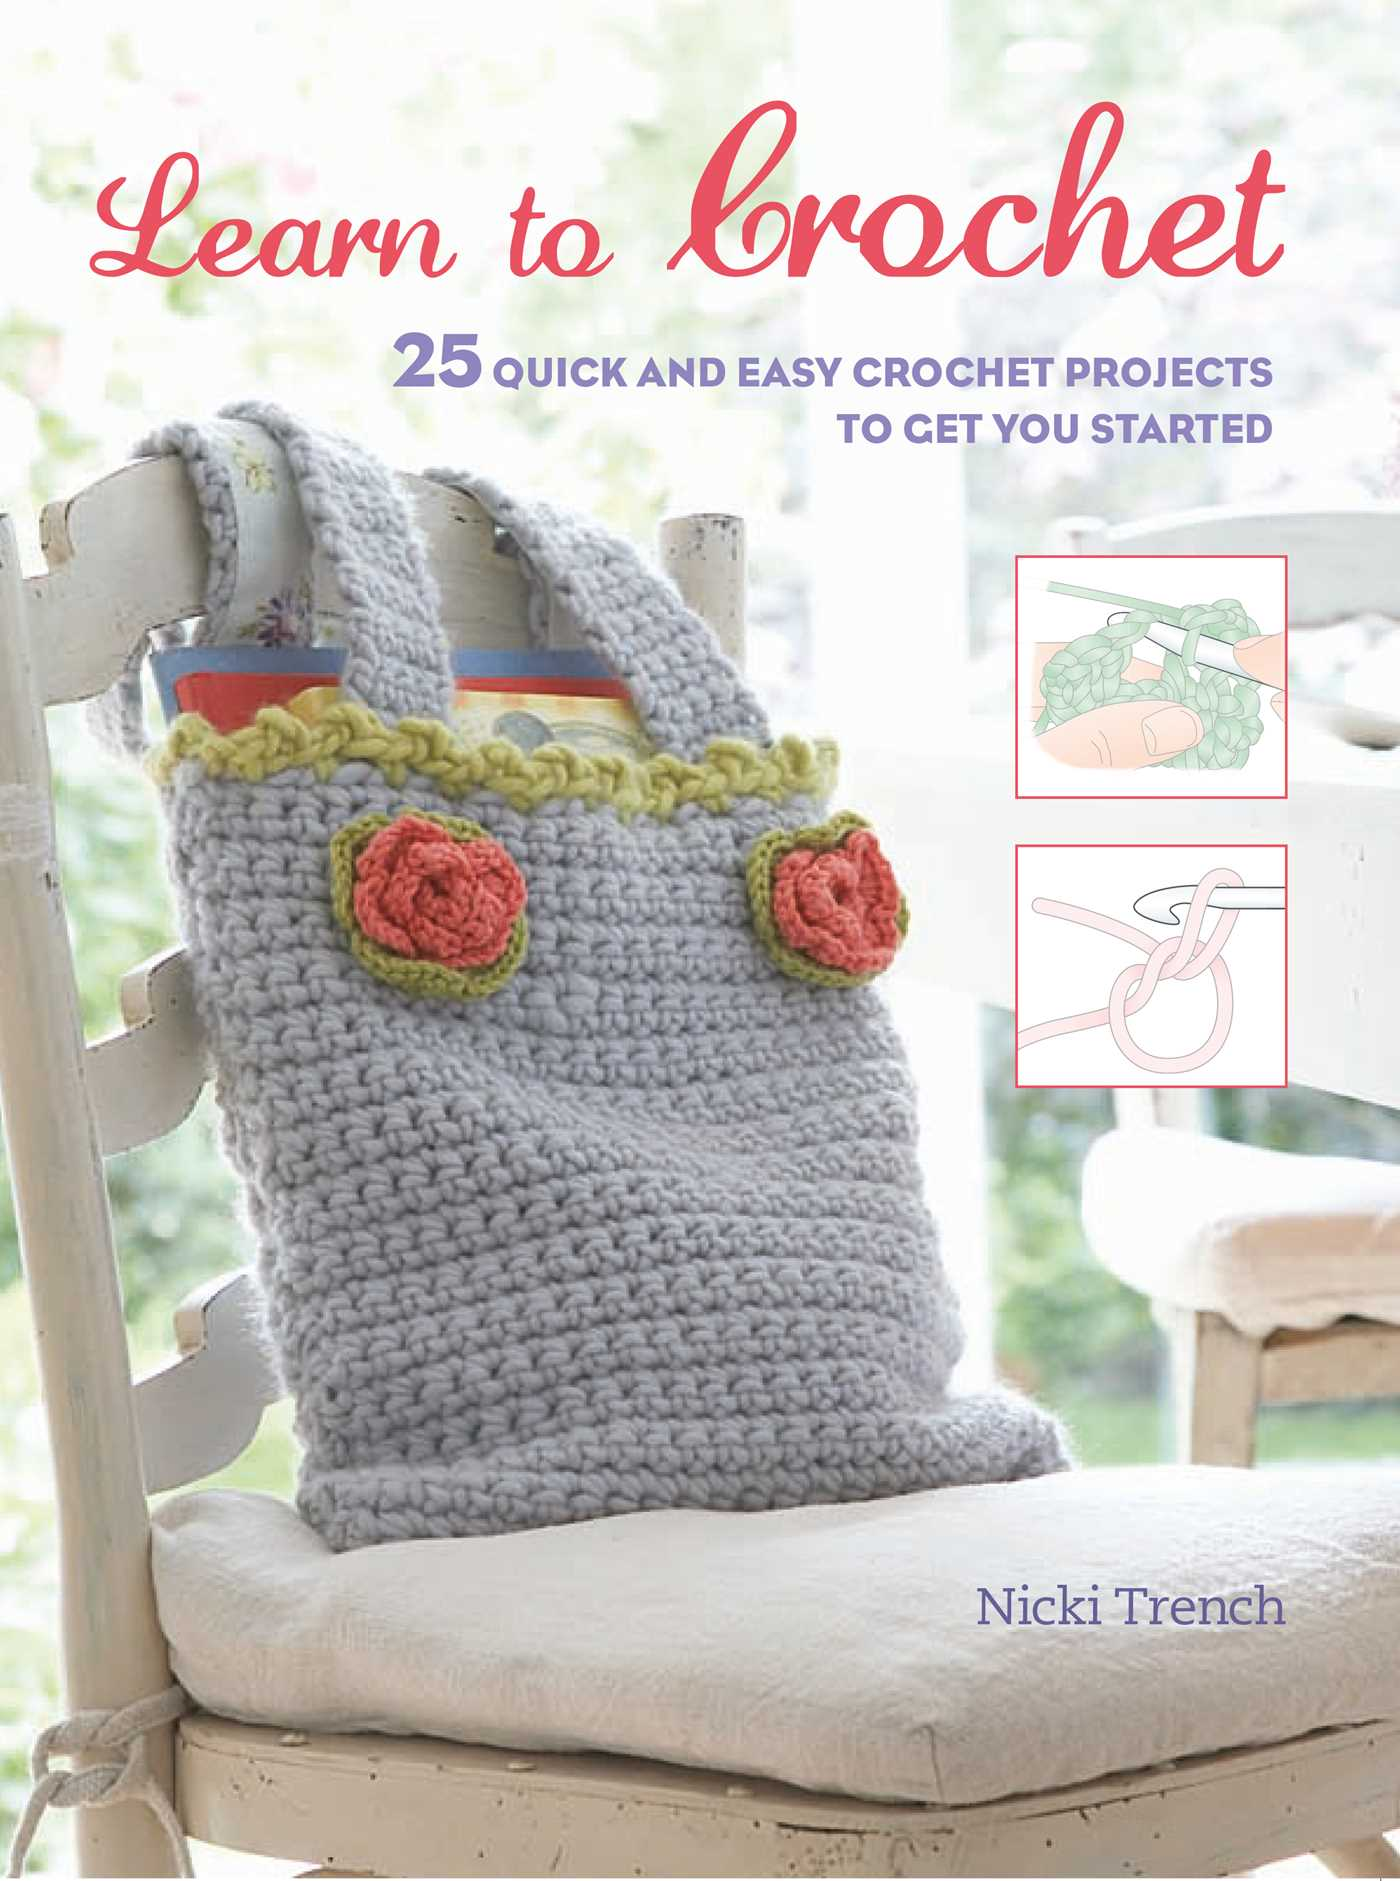 Easy Crochet Book Cover : Learn to crochet book by nicki trench official